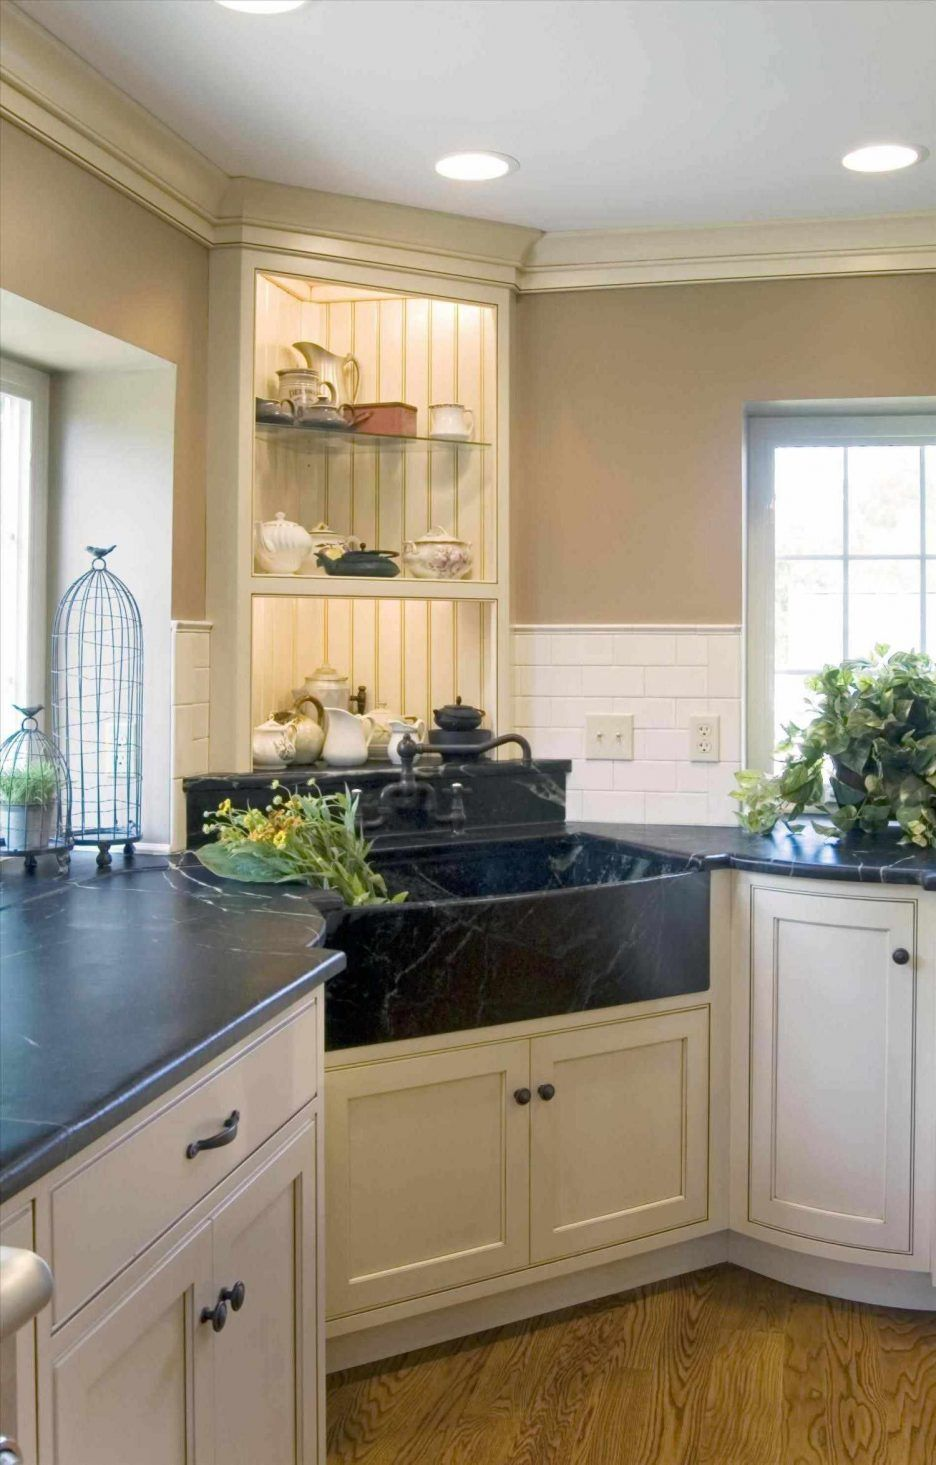 Kitchenideas with soapstone counters wonderful concept of island